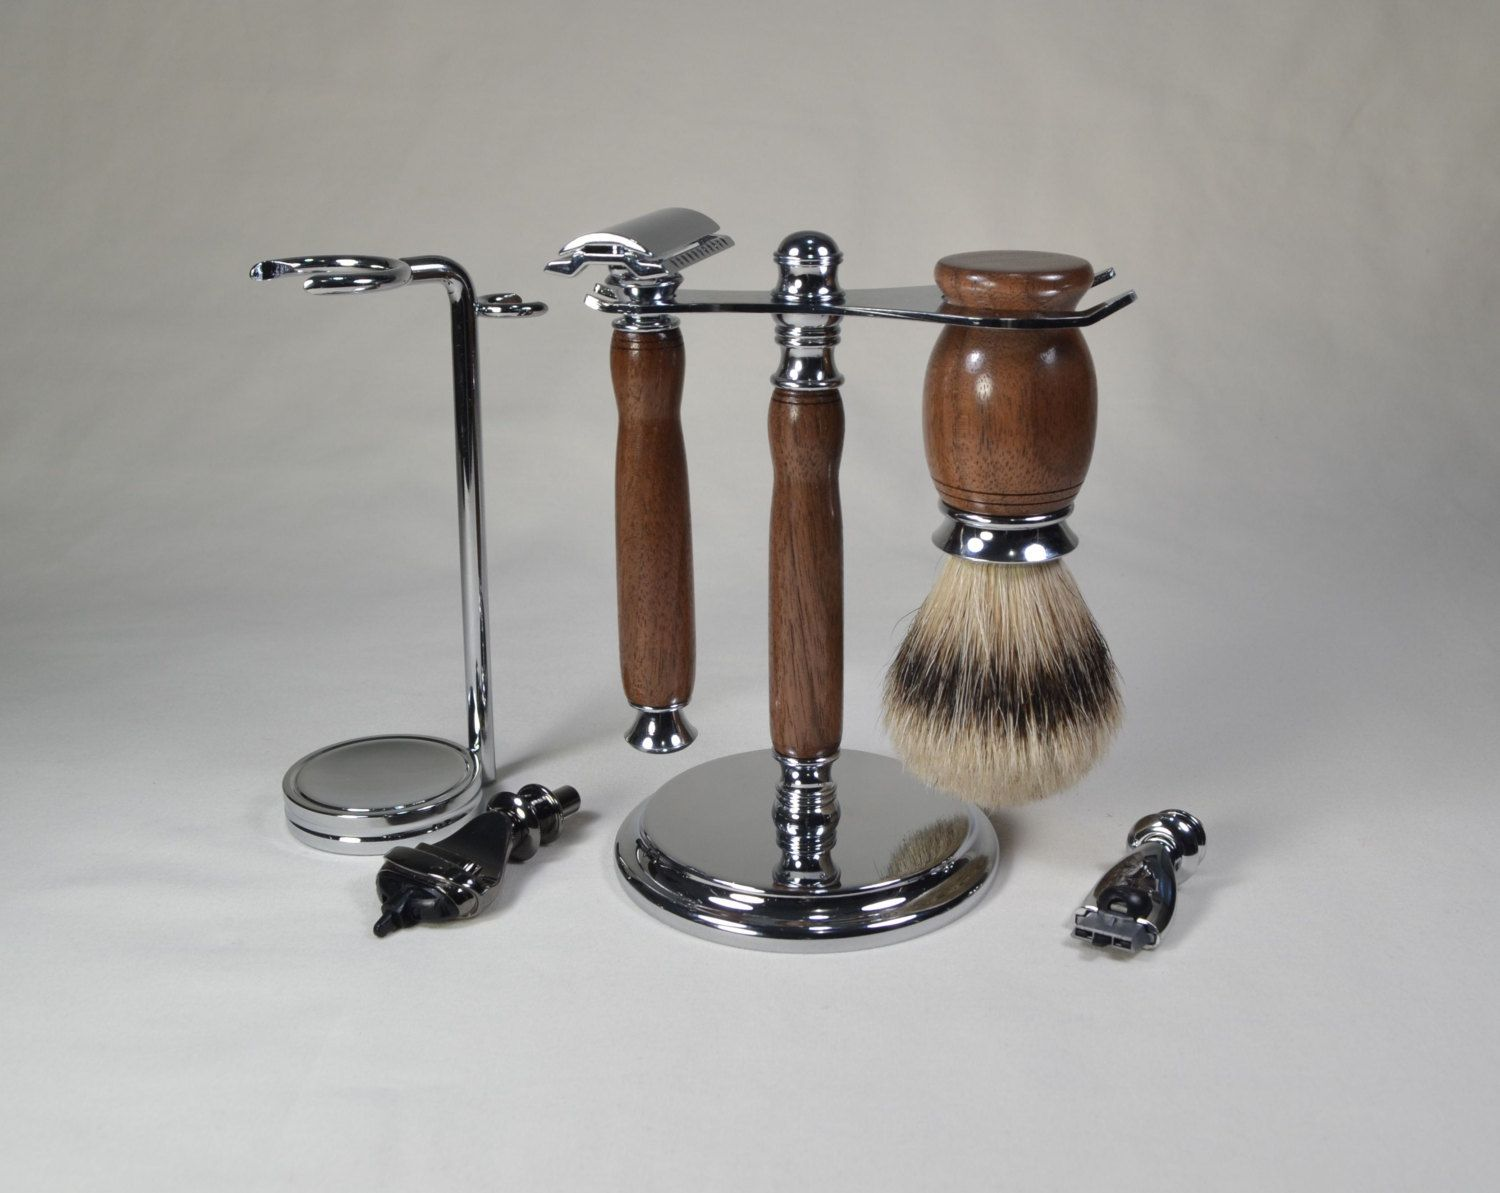 Pin on Shave Equipment